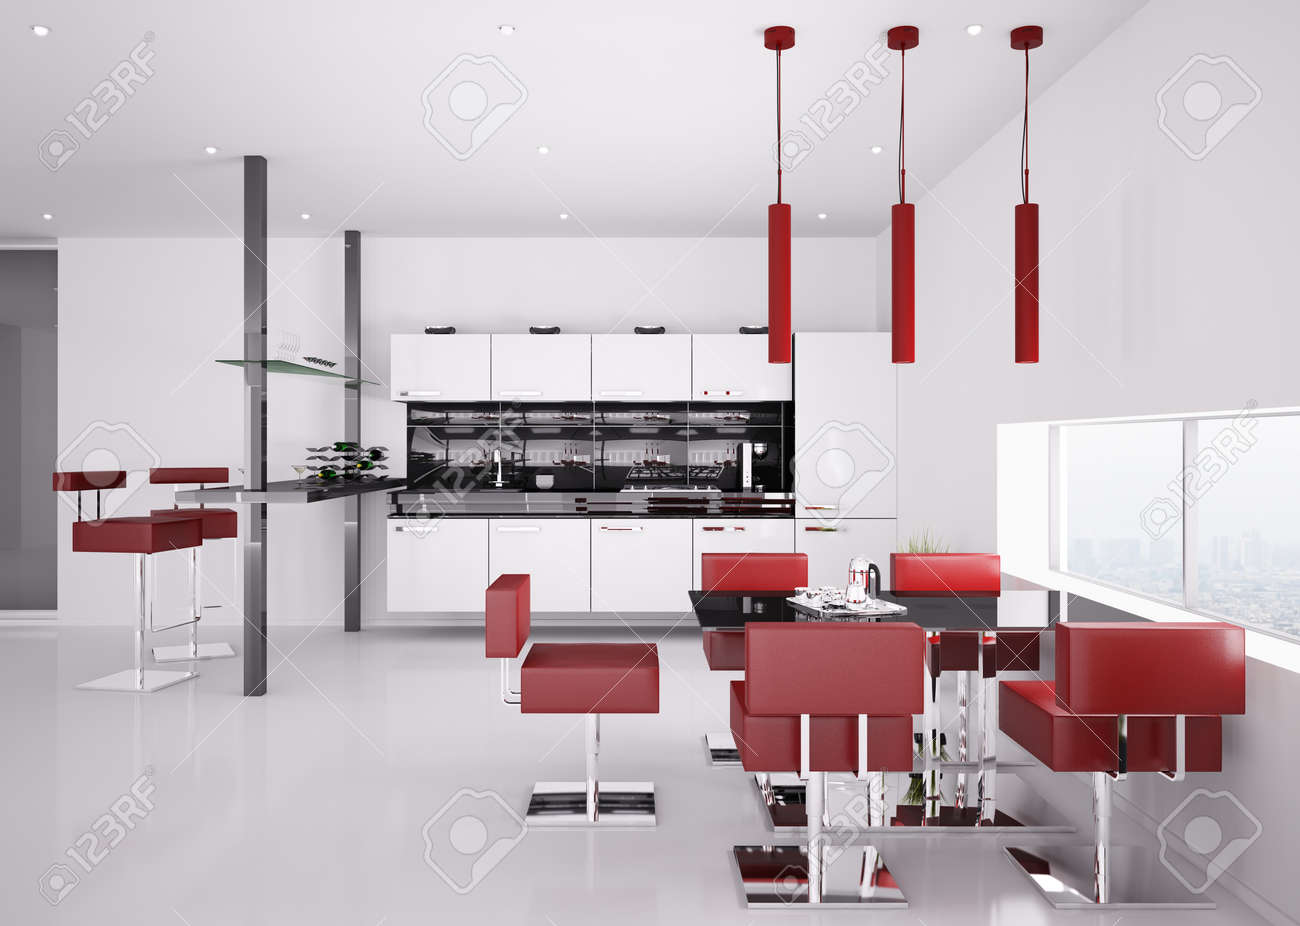 8407667 Interior of modern white kitchen with red chairs 3d render Stock Photo